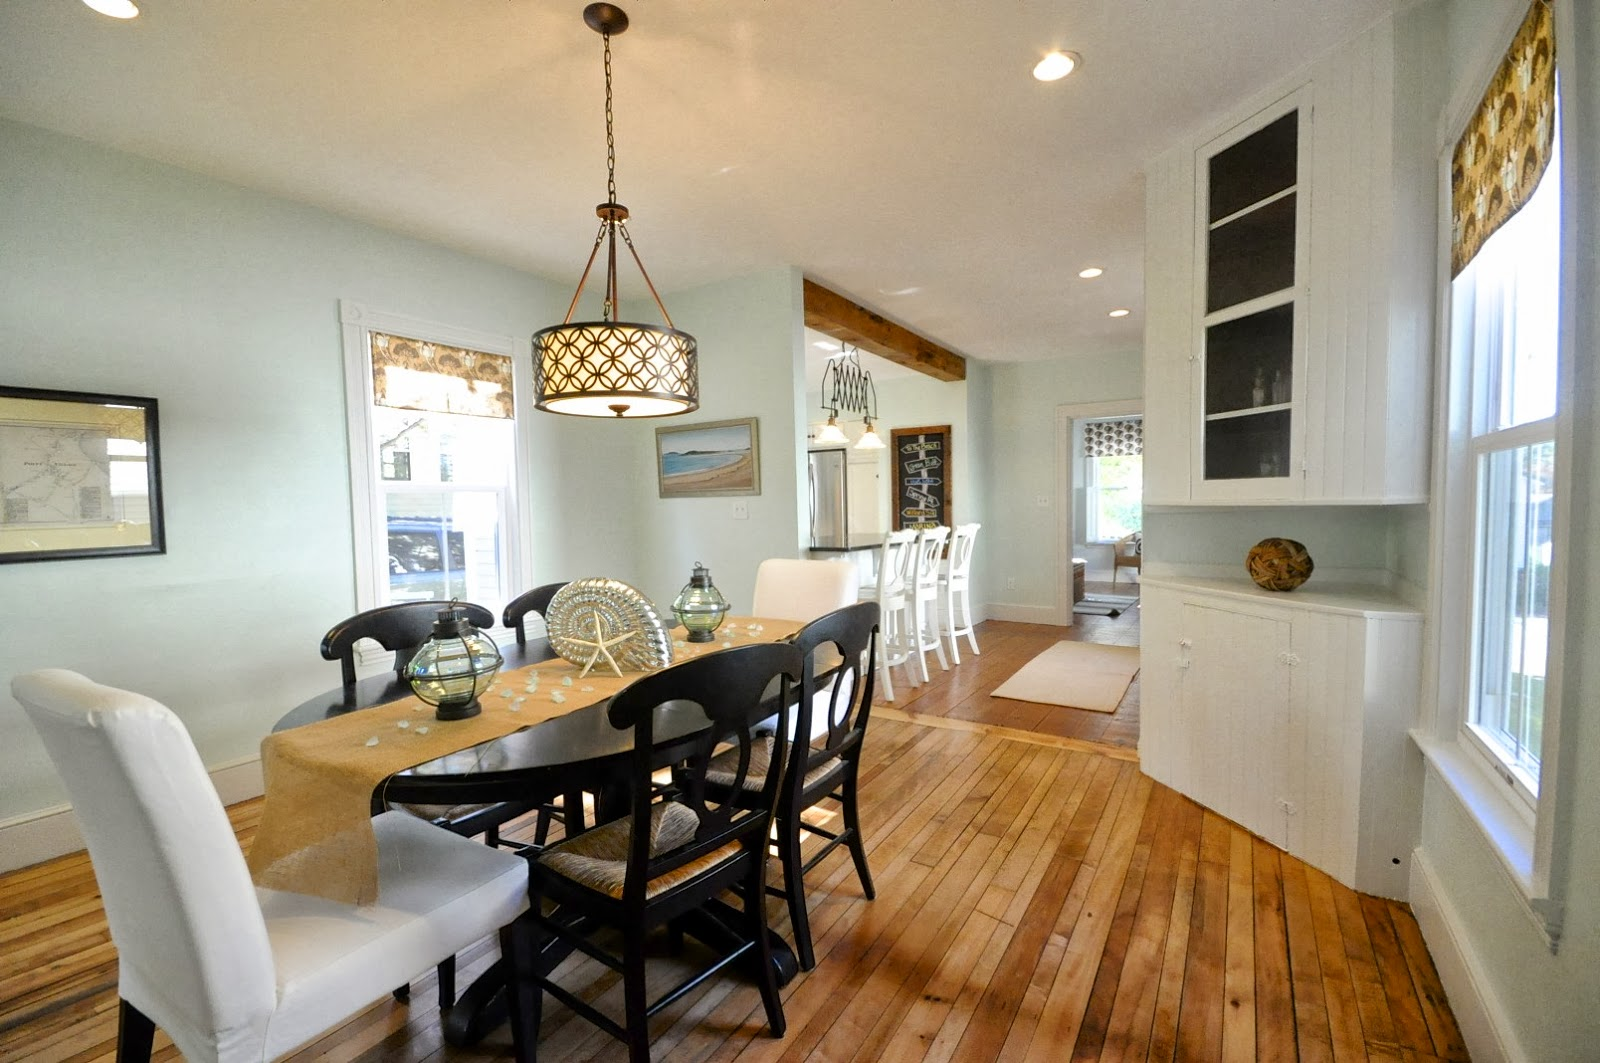 Superieur Create An Open Kitchen And Dining Area | SoPo Cottage Featured On  Remodelaholic.com #